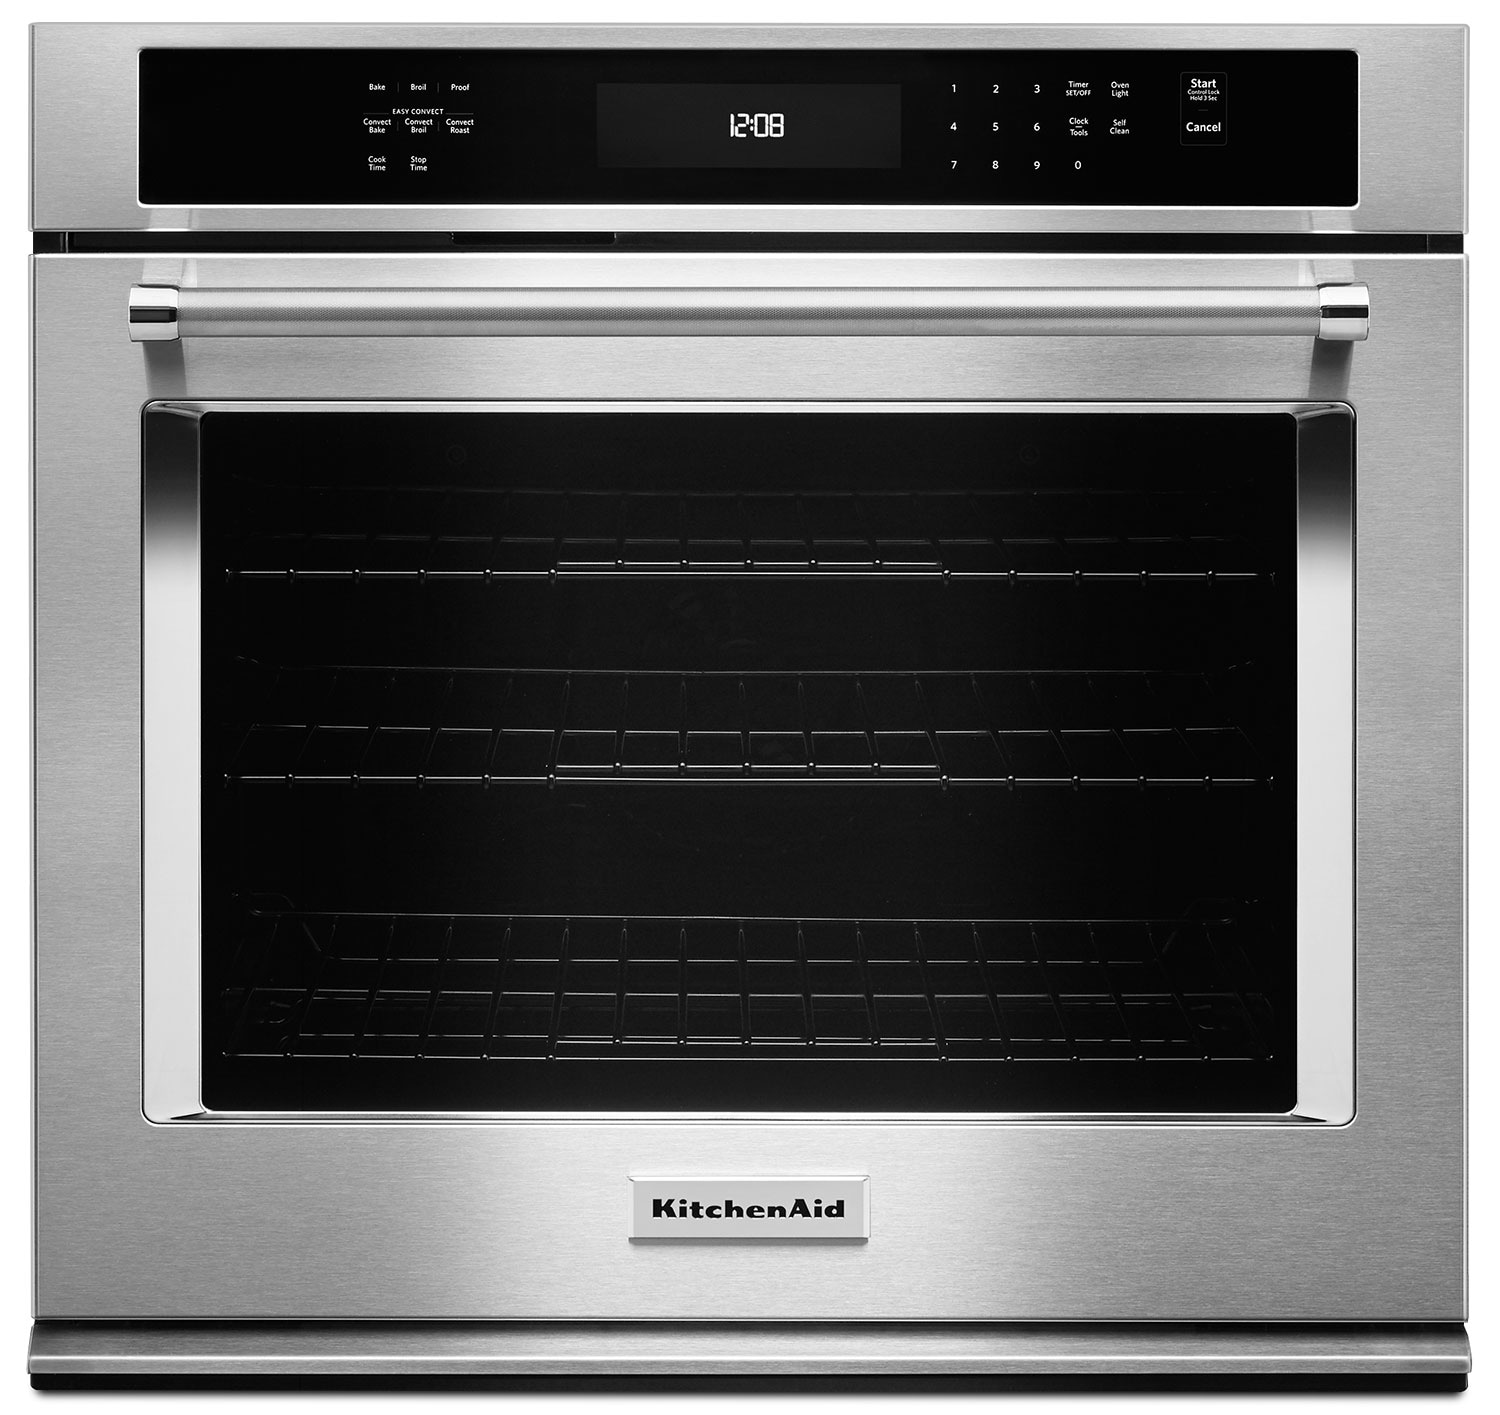 Cooking Products - KitchenAid 5.0 Cu. Ft. Single Wall Oven with Even-Heat™ True Convection - Stainless Steel